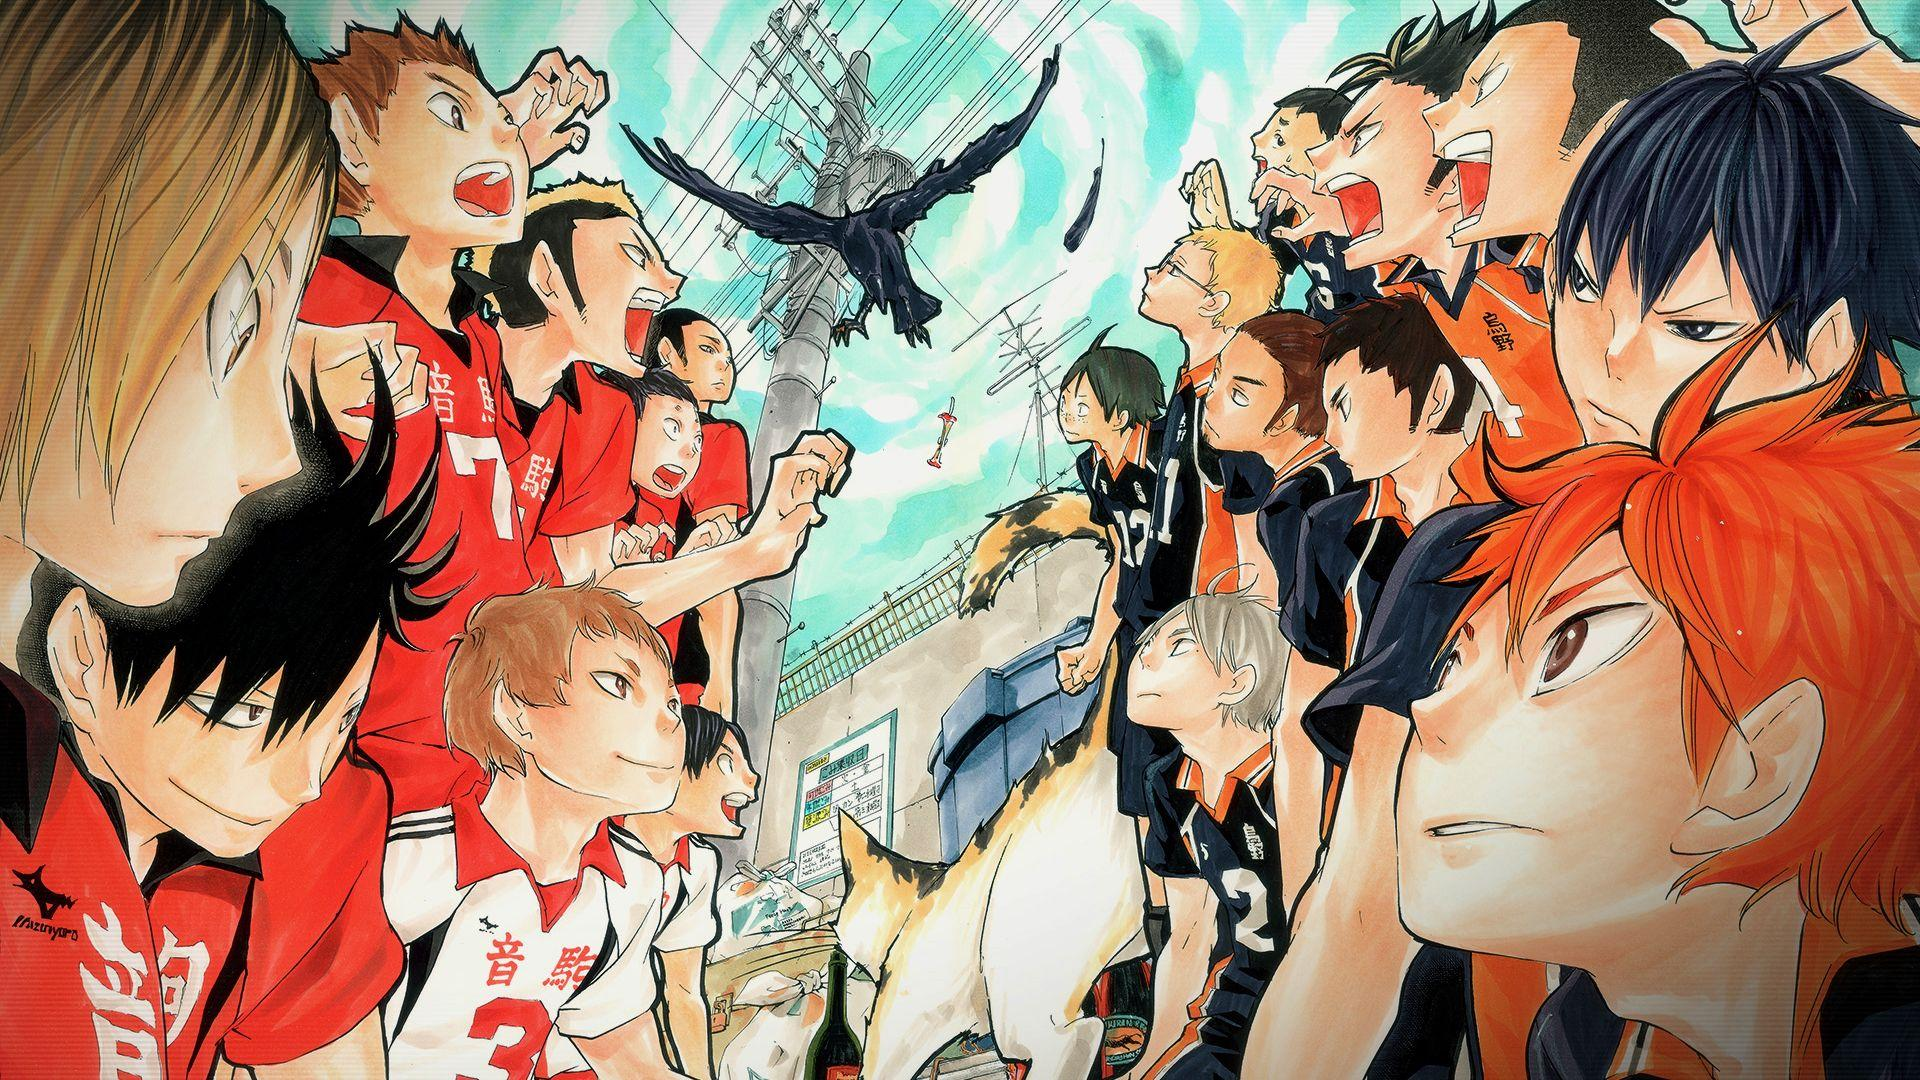 Haikyuu season 5